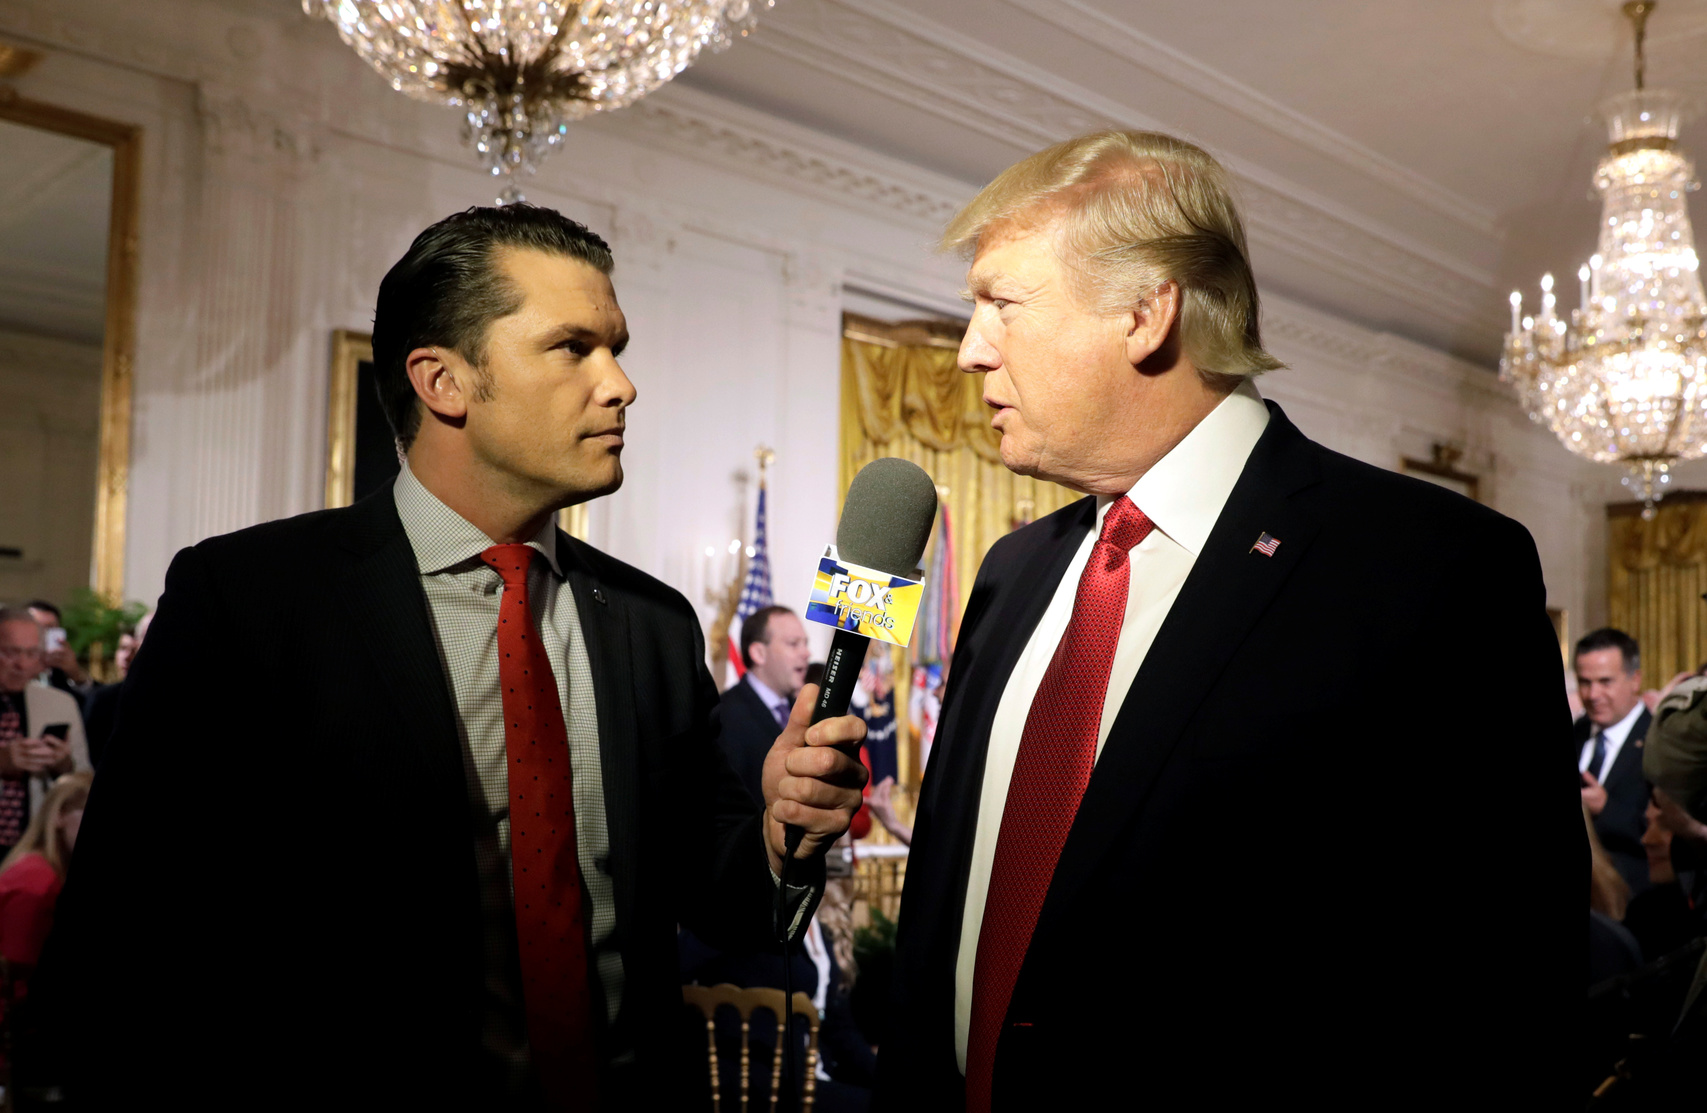 President Donald Trump is interviewed by Fox & Friends host Pete Hegseth, the former executive director of the Concerned Veterans for America.